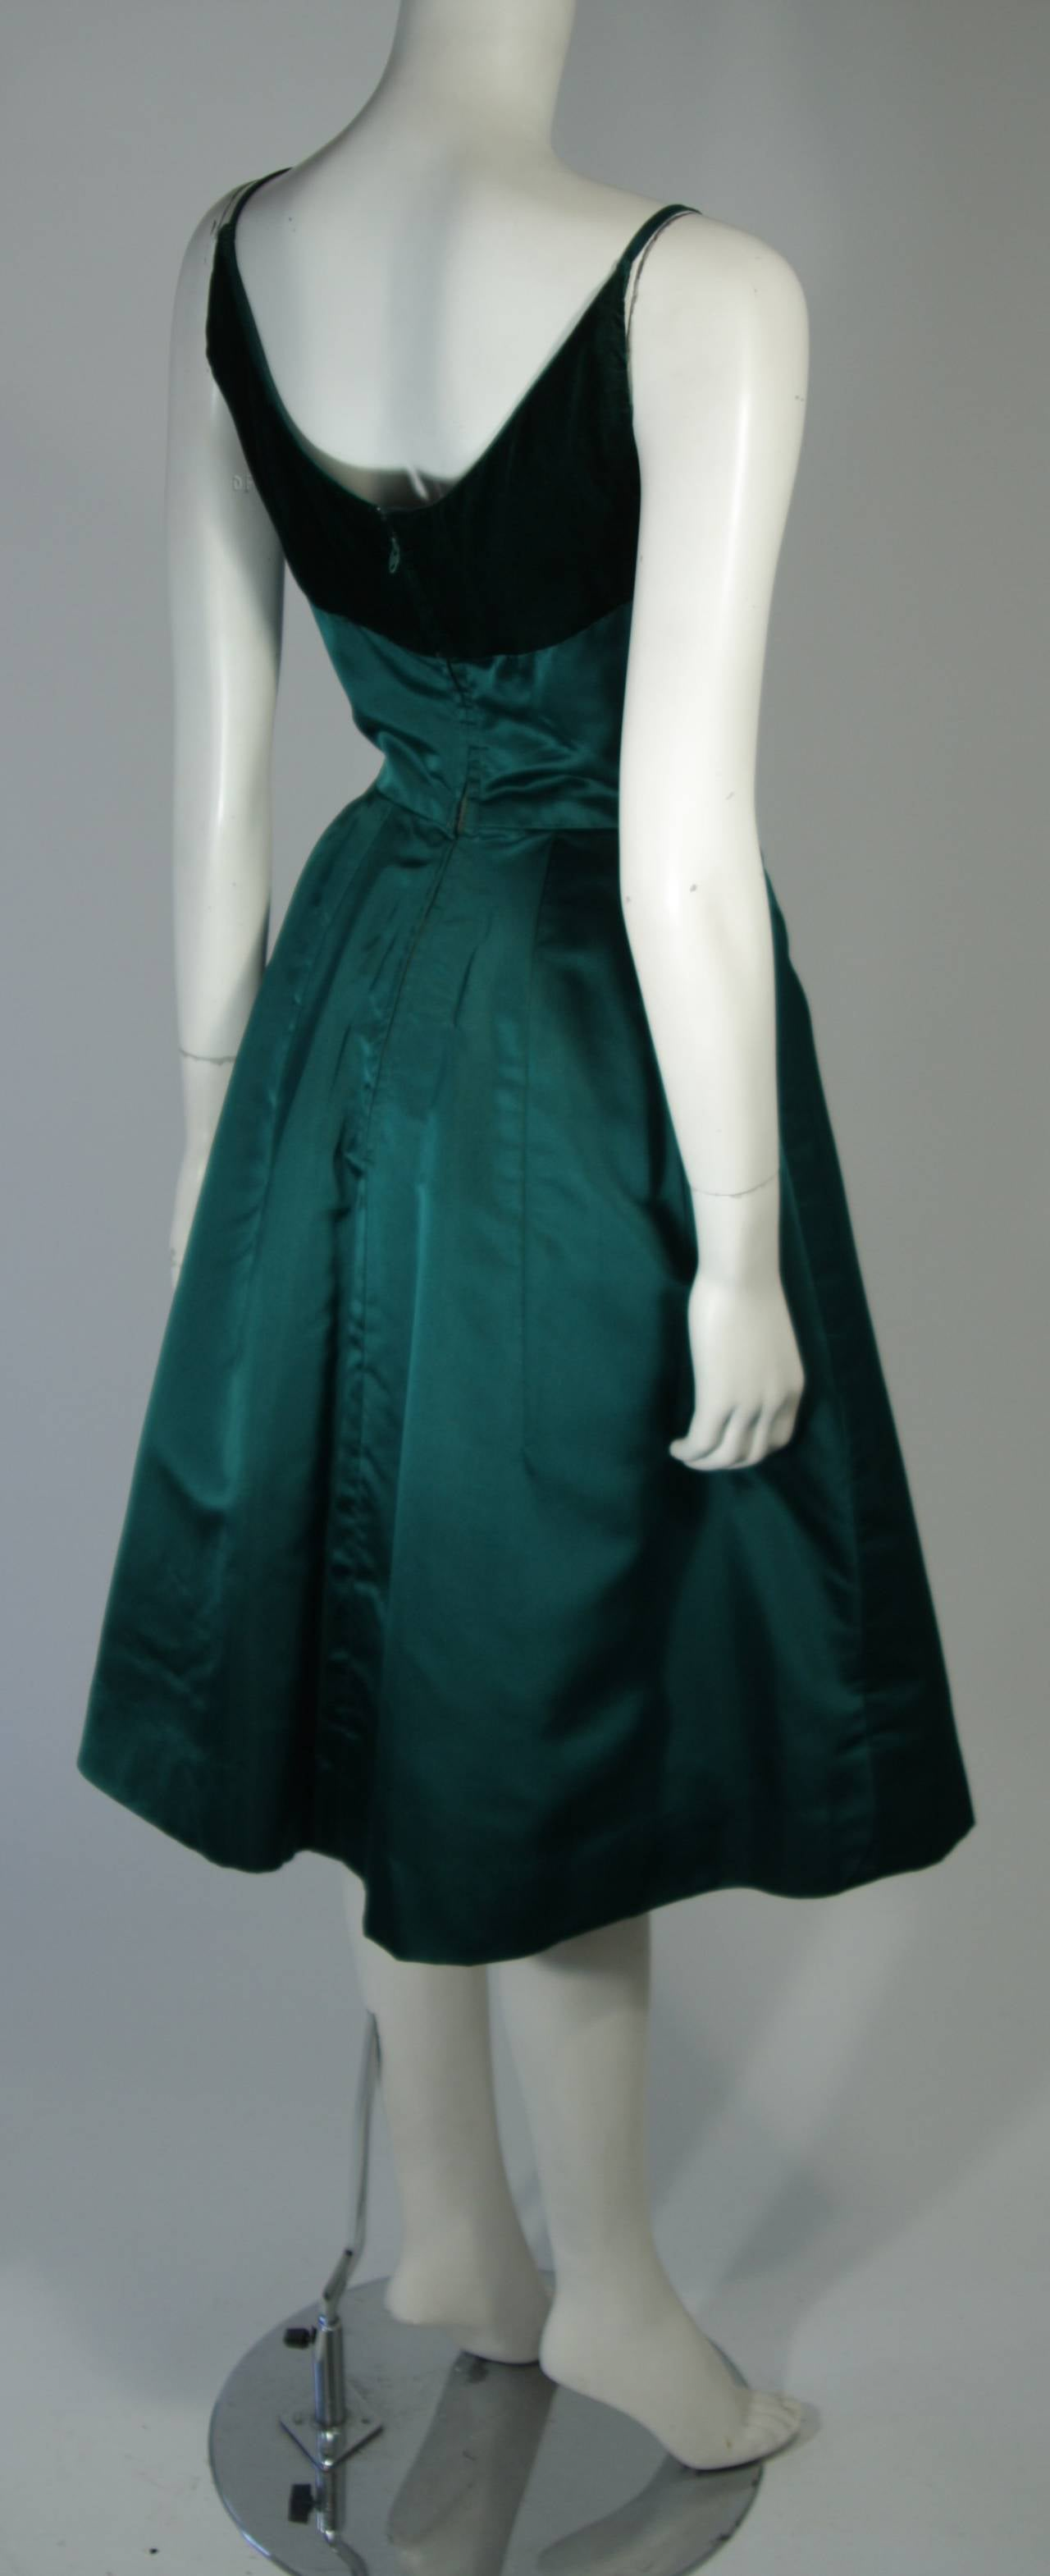 Oleg Cassini Emerald Silk and Velvet Applique Dress Size Small For Sale 2